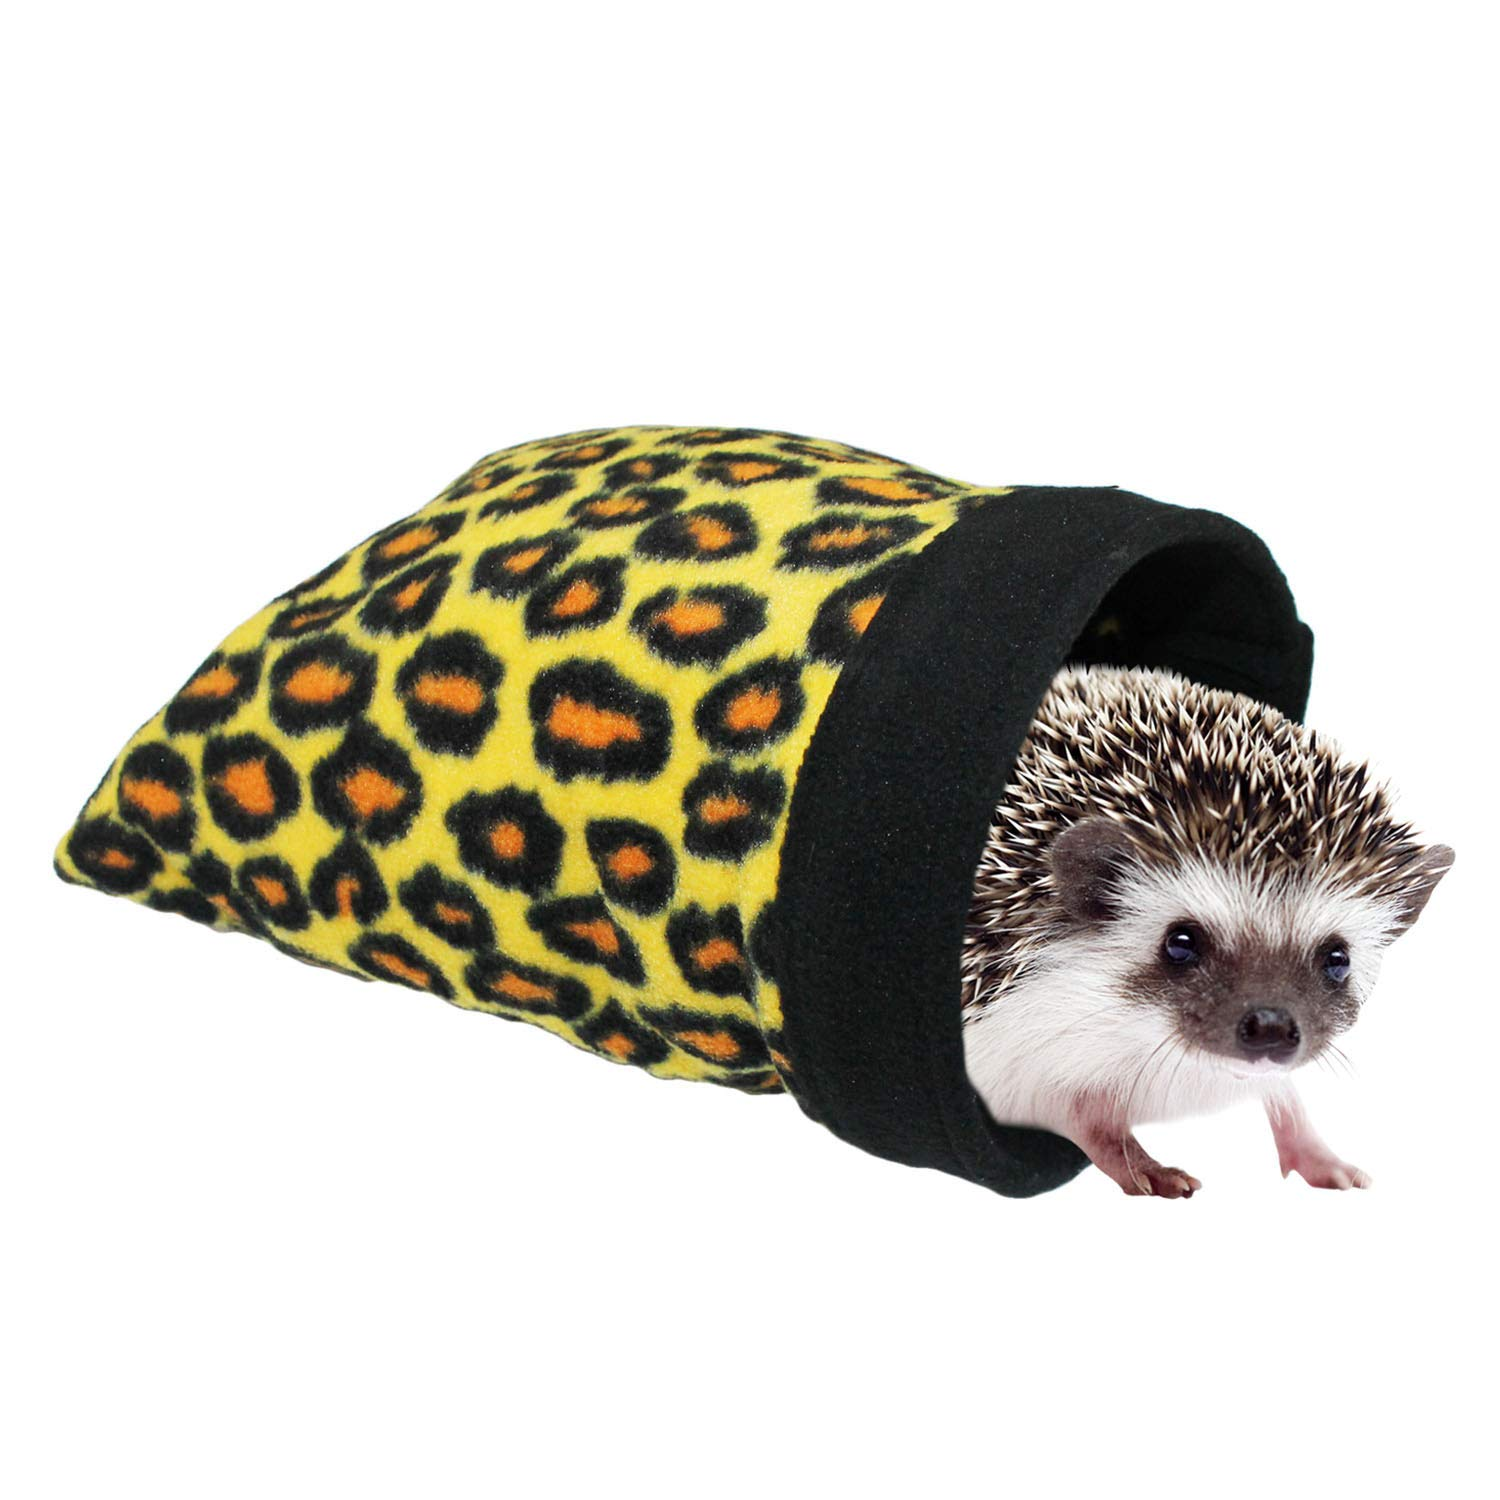 Exotic Nutrition Hedgie Pouch (Leopard) - Hideout/Hut/Sleep Bed/Den for Hedgehogs, Sugar Gliders, Chinchillas, Rats, Ferrets, Guinea Pigs, Rabbits, Hamsters, Squirrels